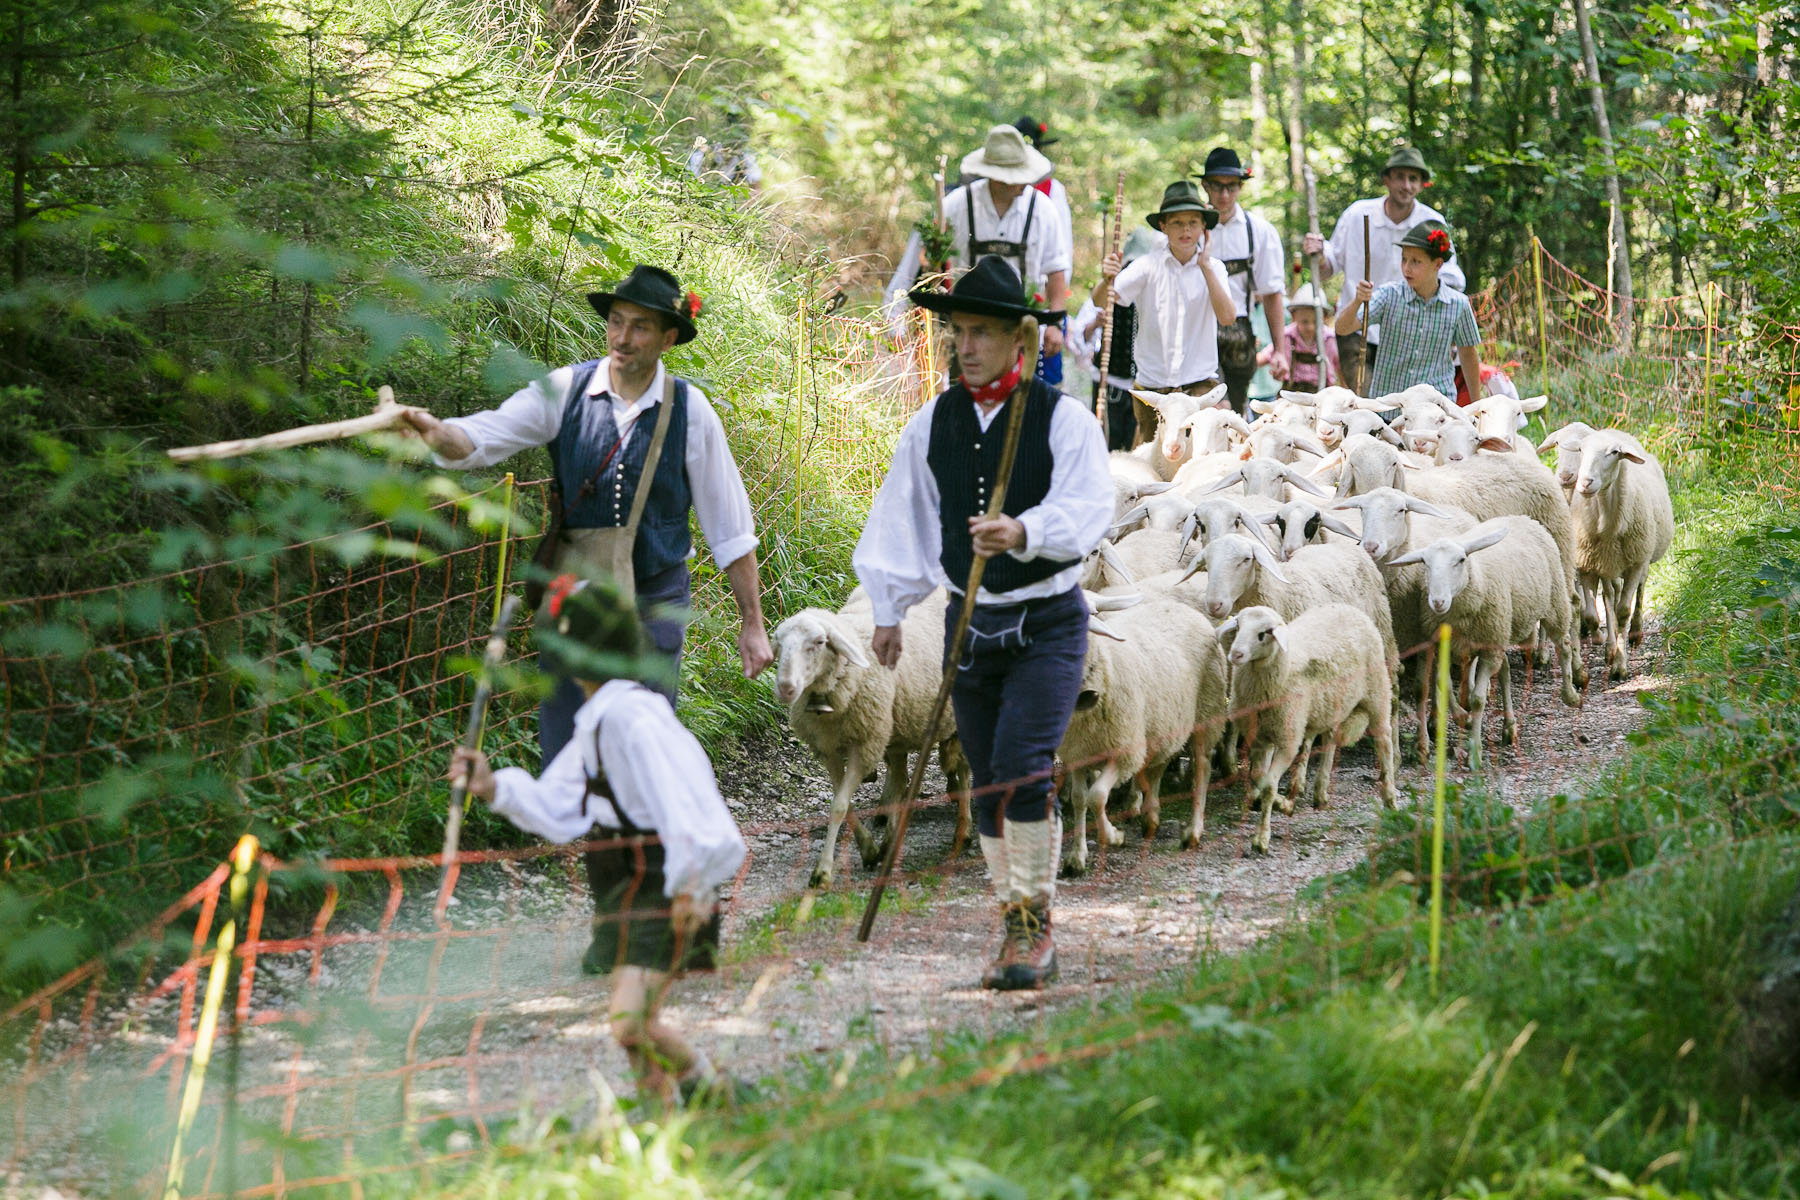 Shepherds herd the sheep to the 57th annual Shepherd\'s Ball in Jezersko, Slovenia.